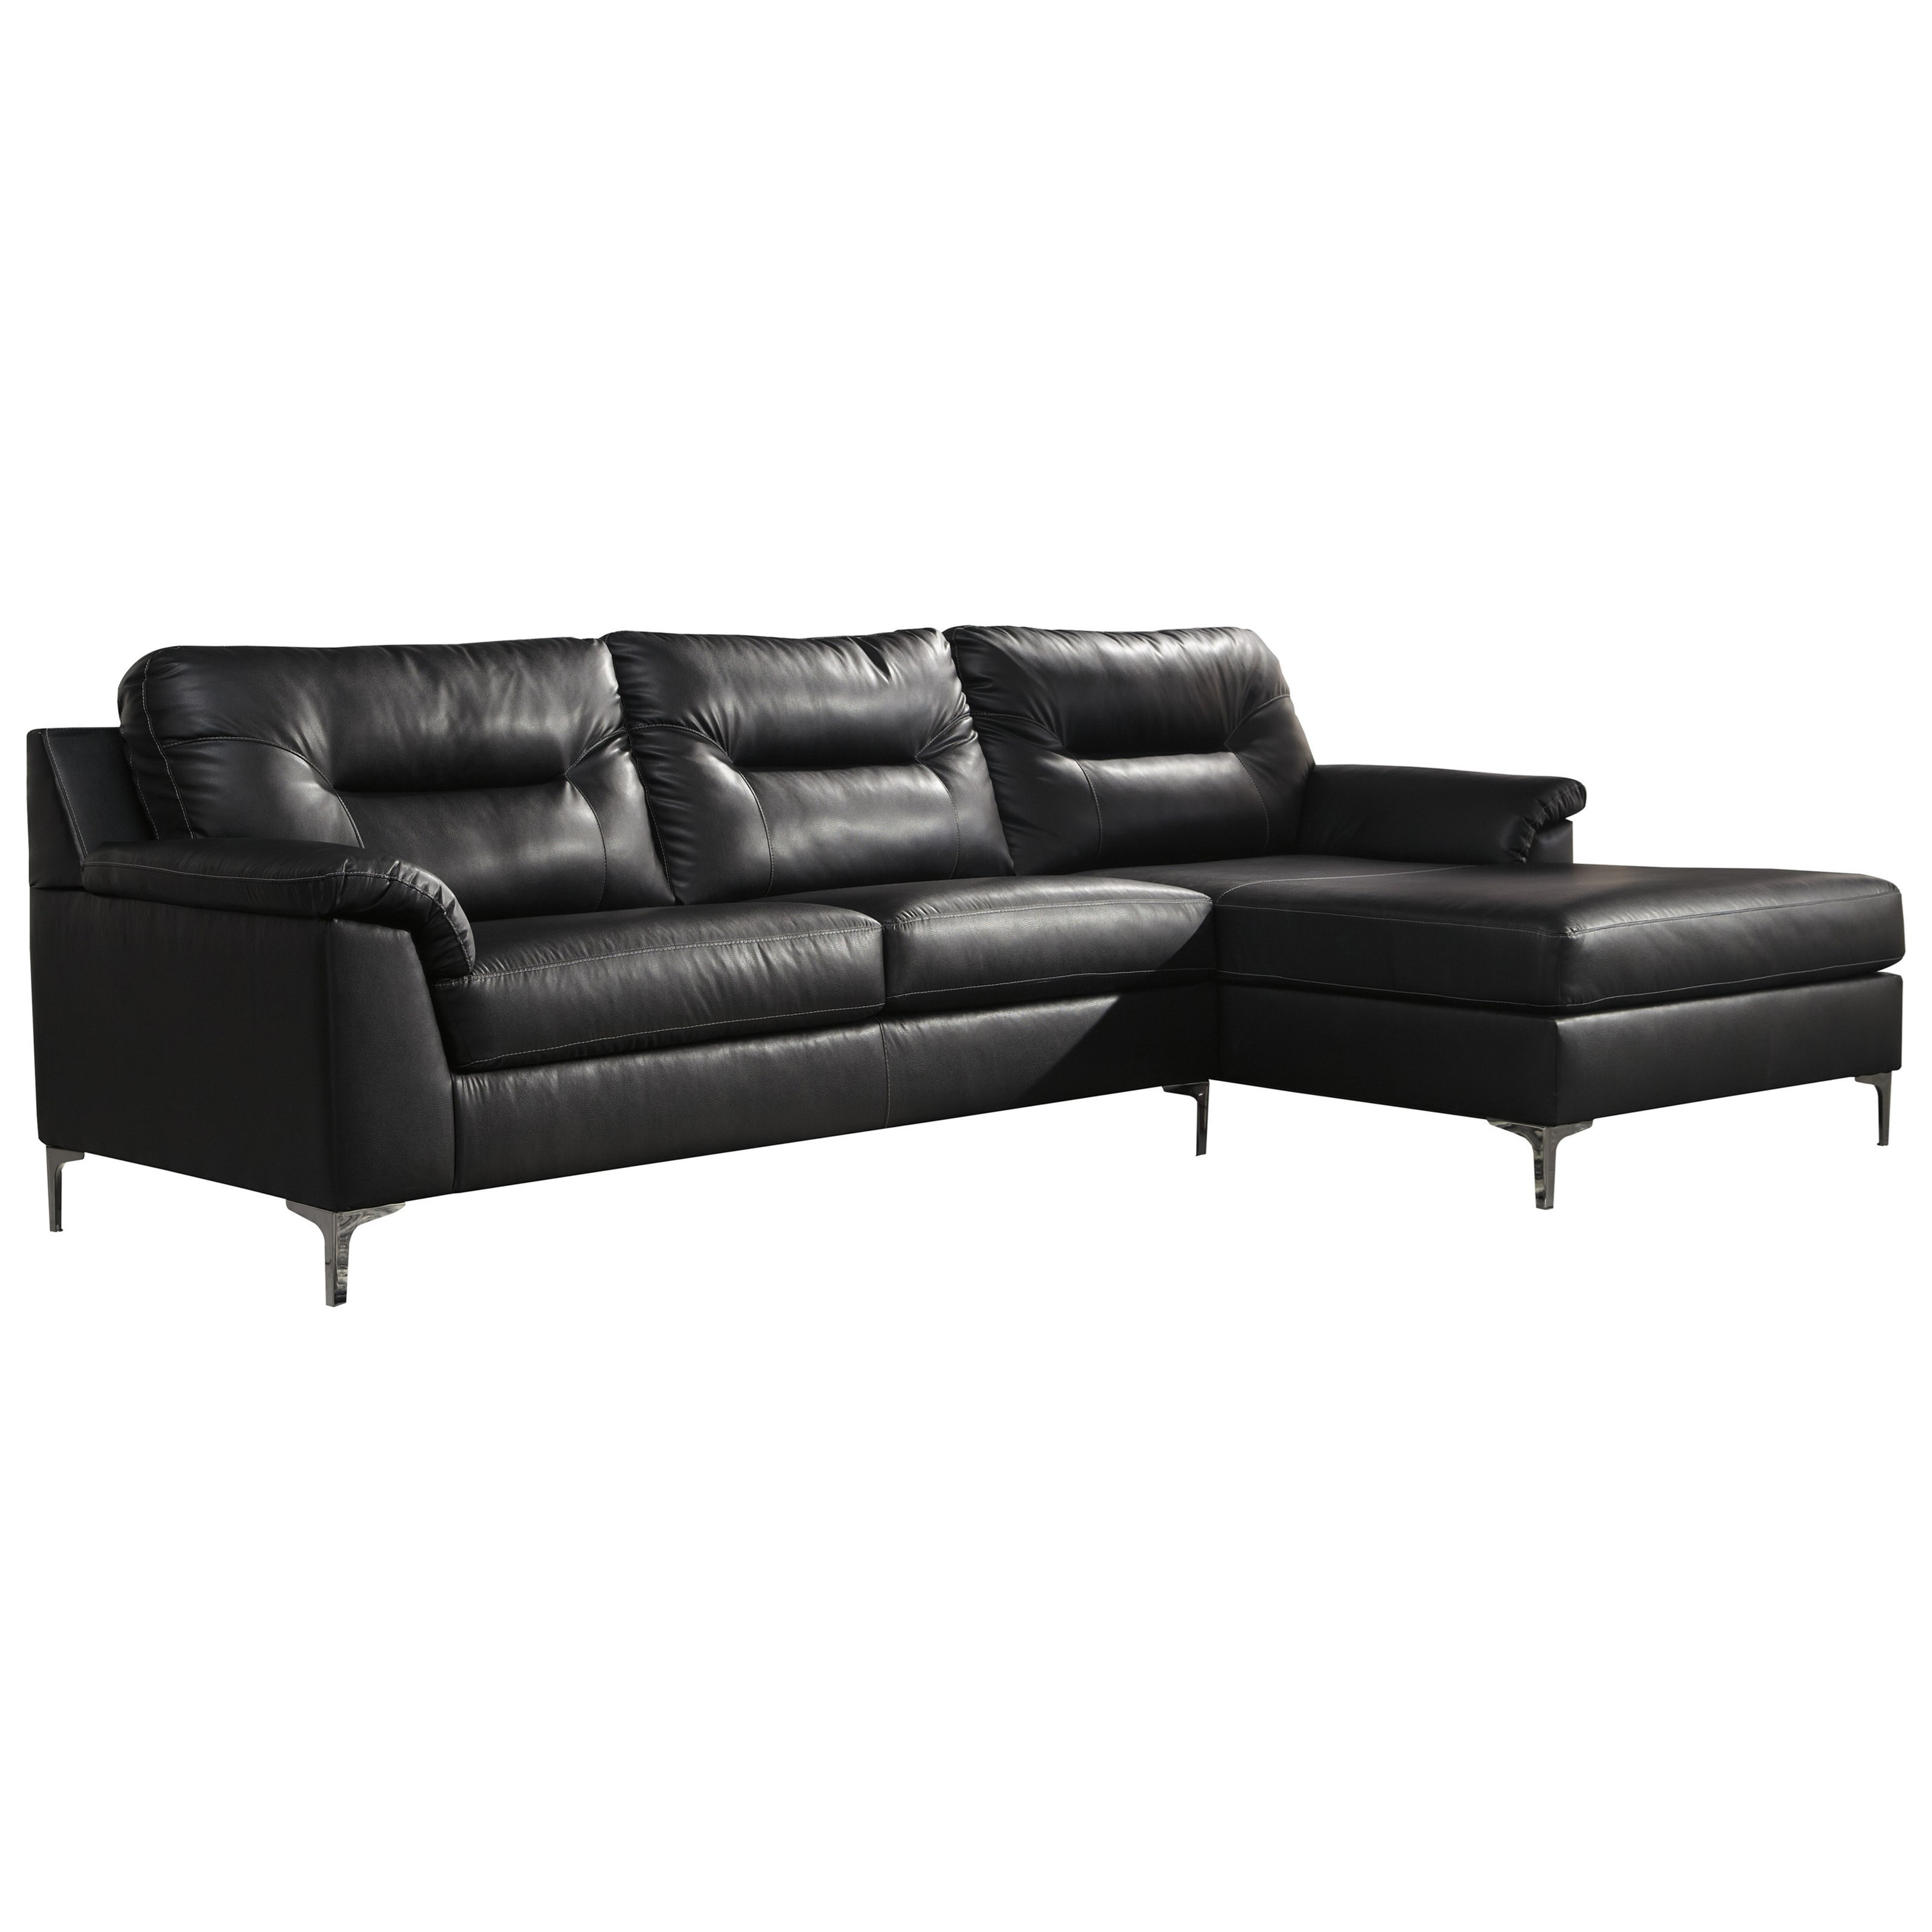 Signature Design by Ashley Tensas Sectional - Item Number: 3960466+17